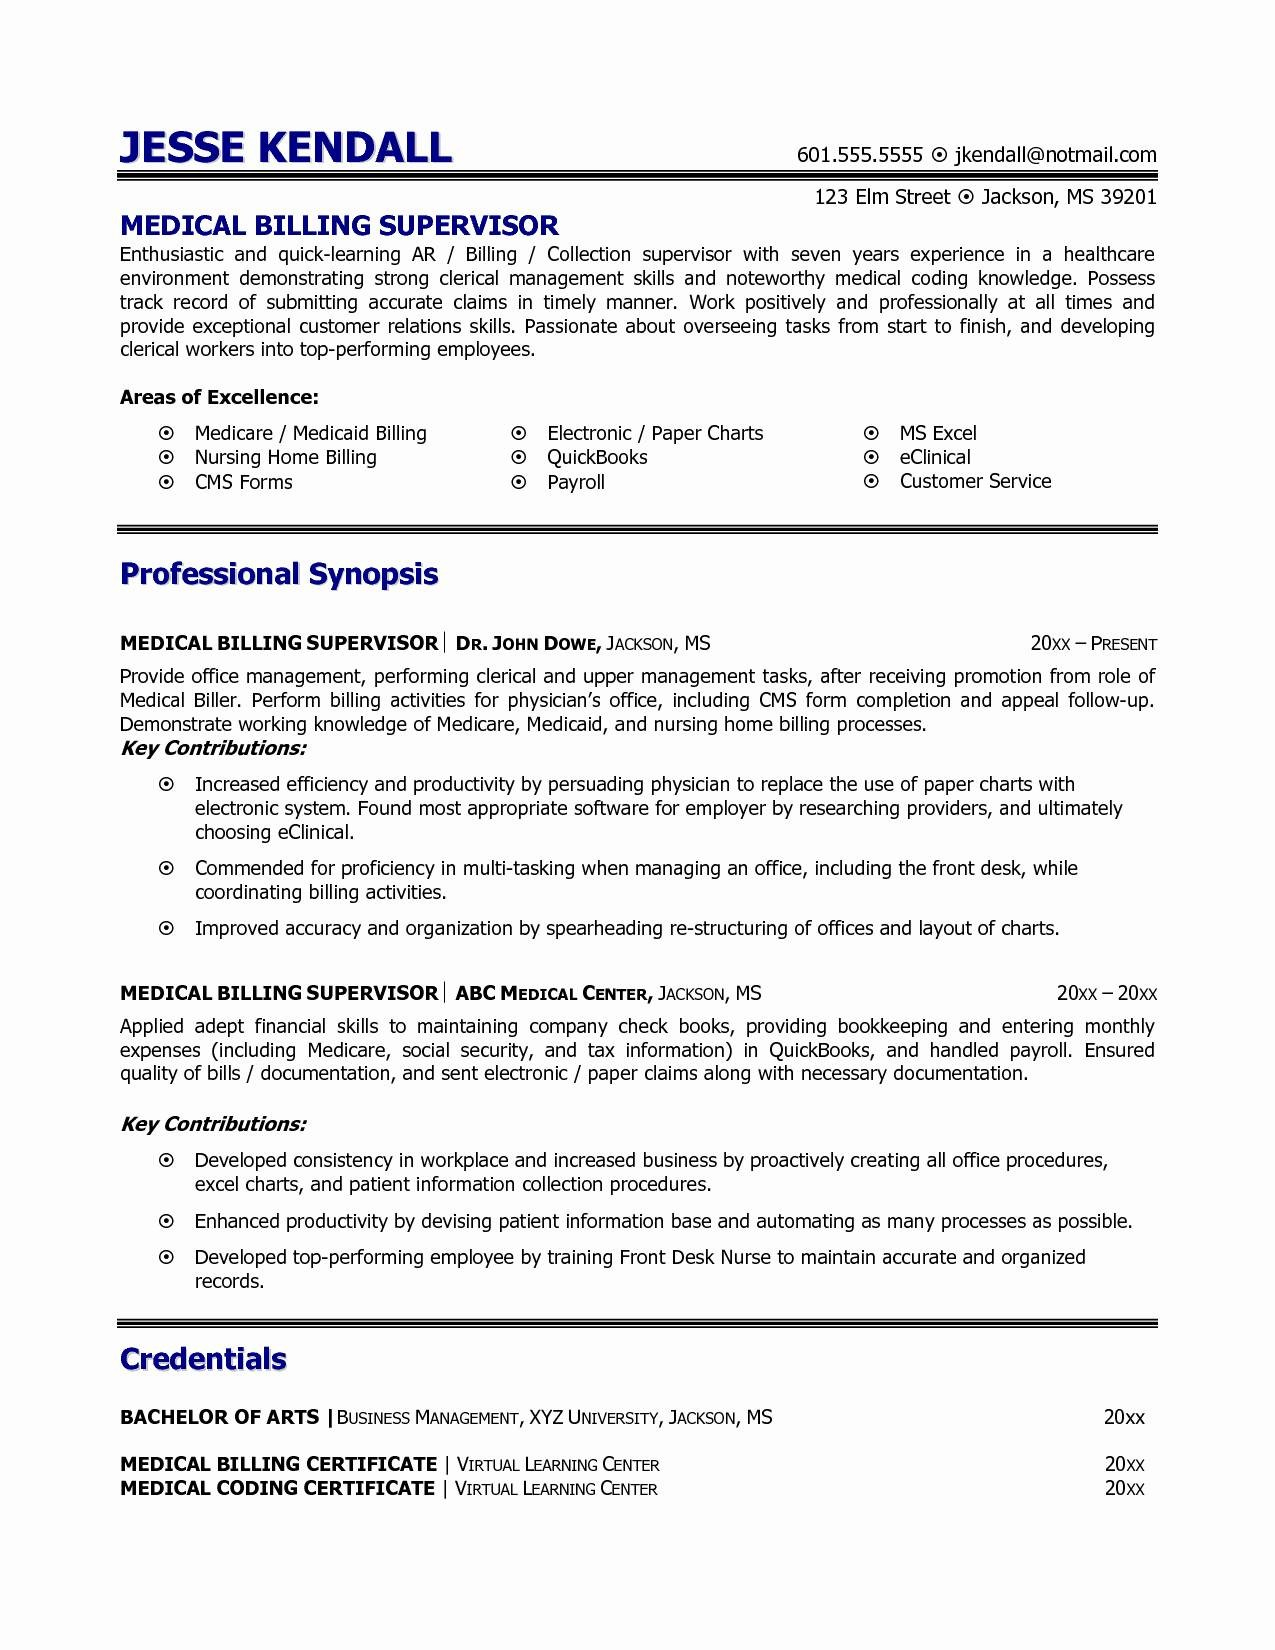 Sample Resume for Medical Billing - Medical Coding Resume Samples Best Job Description Medical